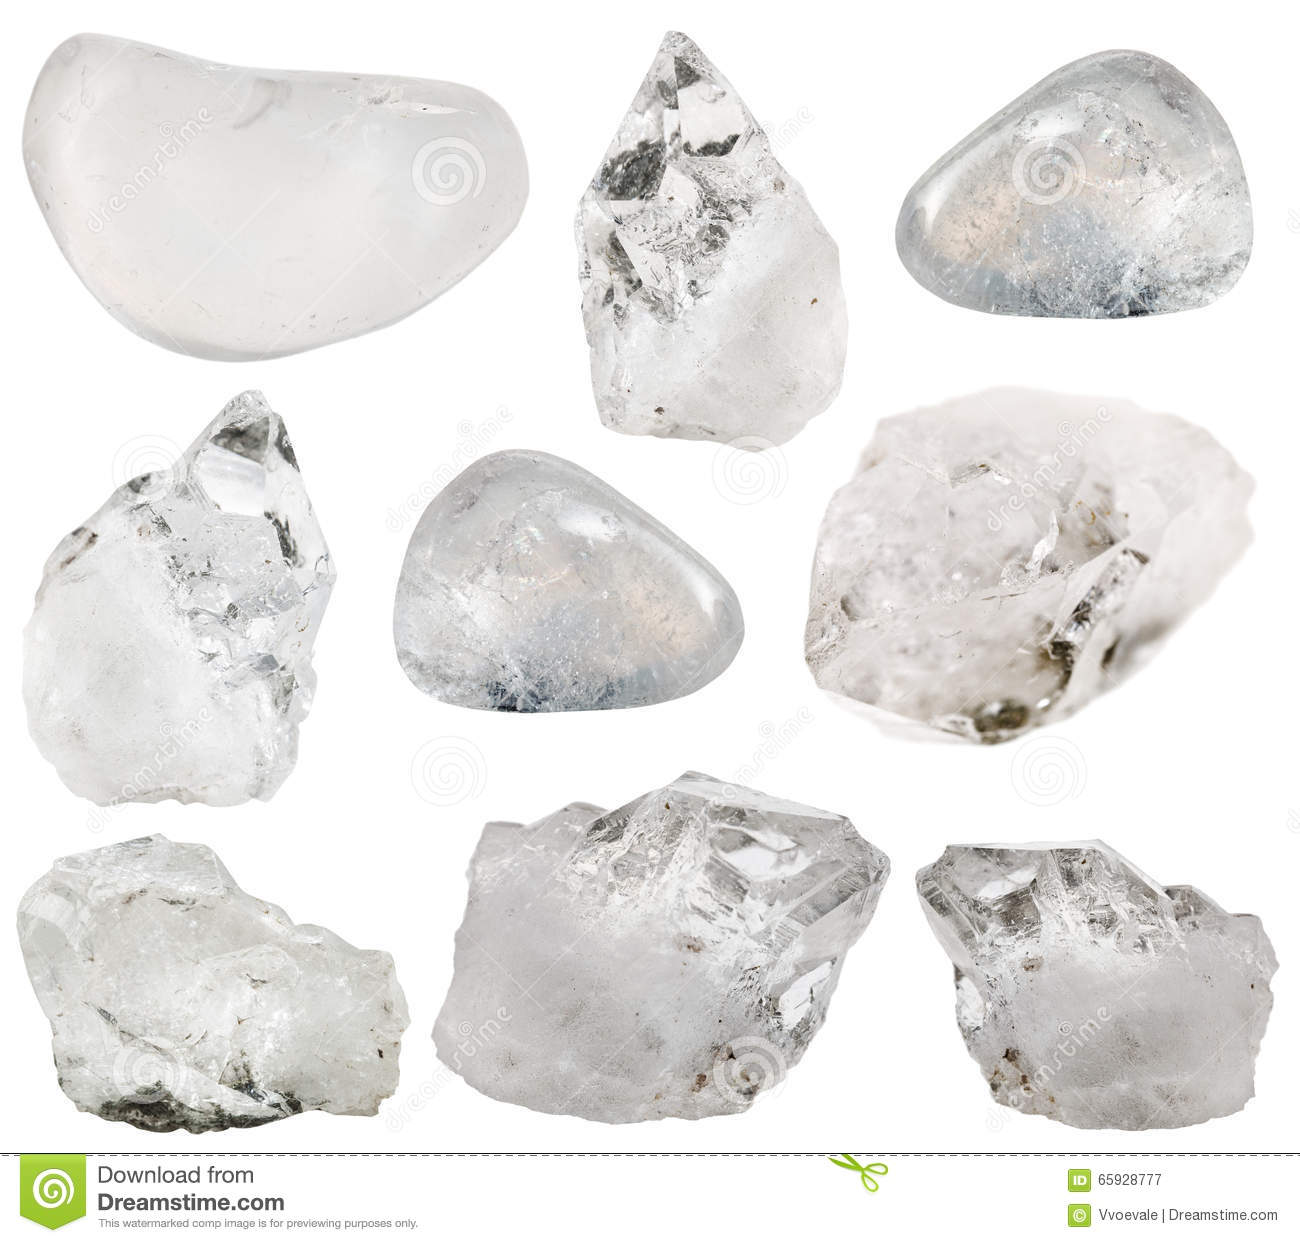 Is quartz considered a natural stone - Rock Crystal Clear Quartz Stone And Tumbled Gems